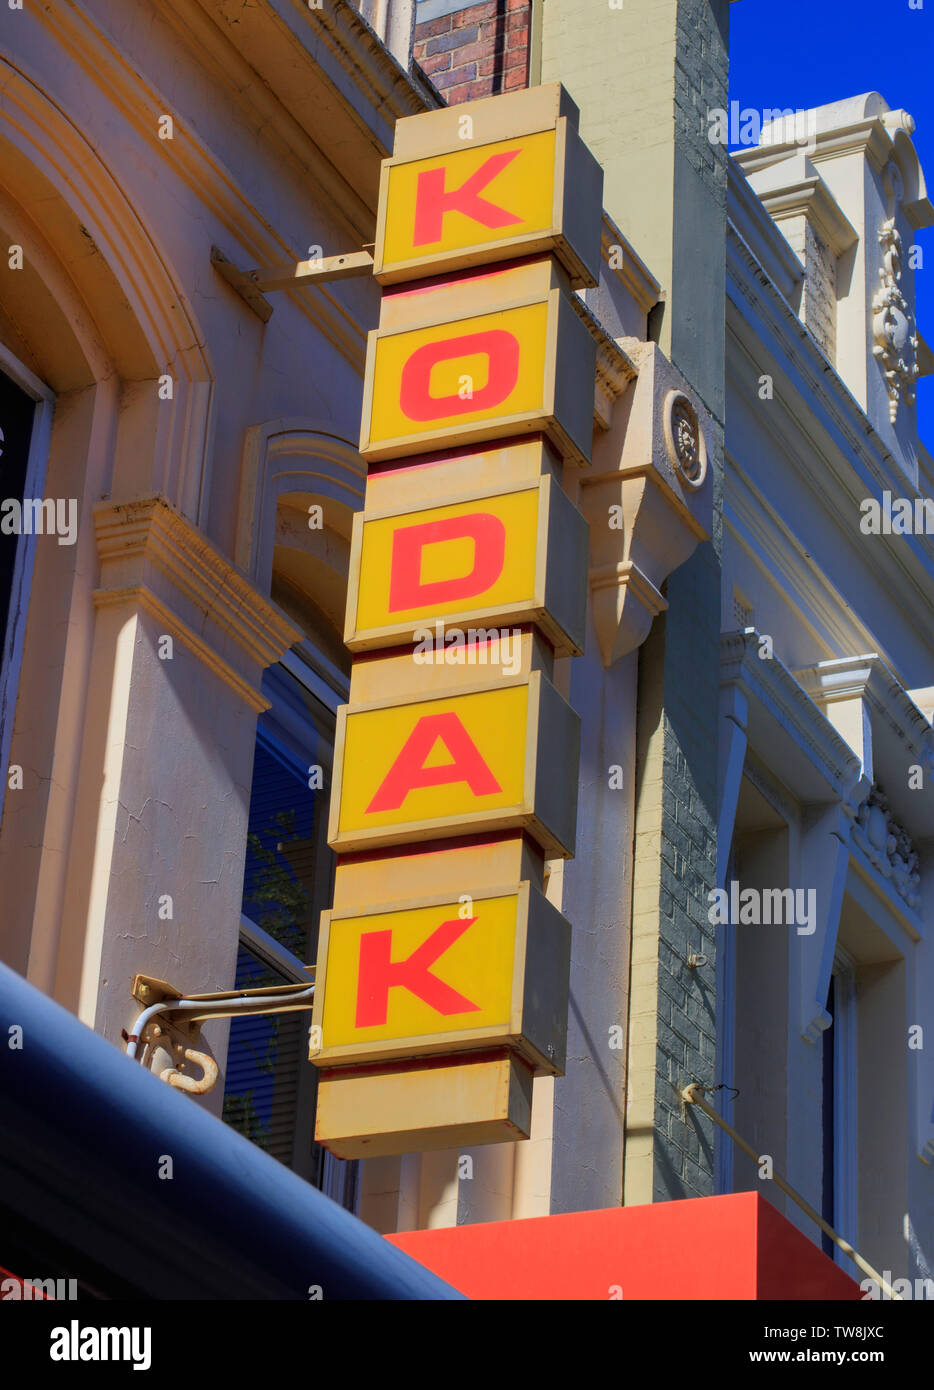 Retro Kodak sign above a store in Launceston Tasmania.   Kodak film company once dominated the film and camera industry but failed to manage digital r - Stock Image